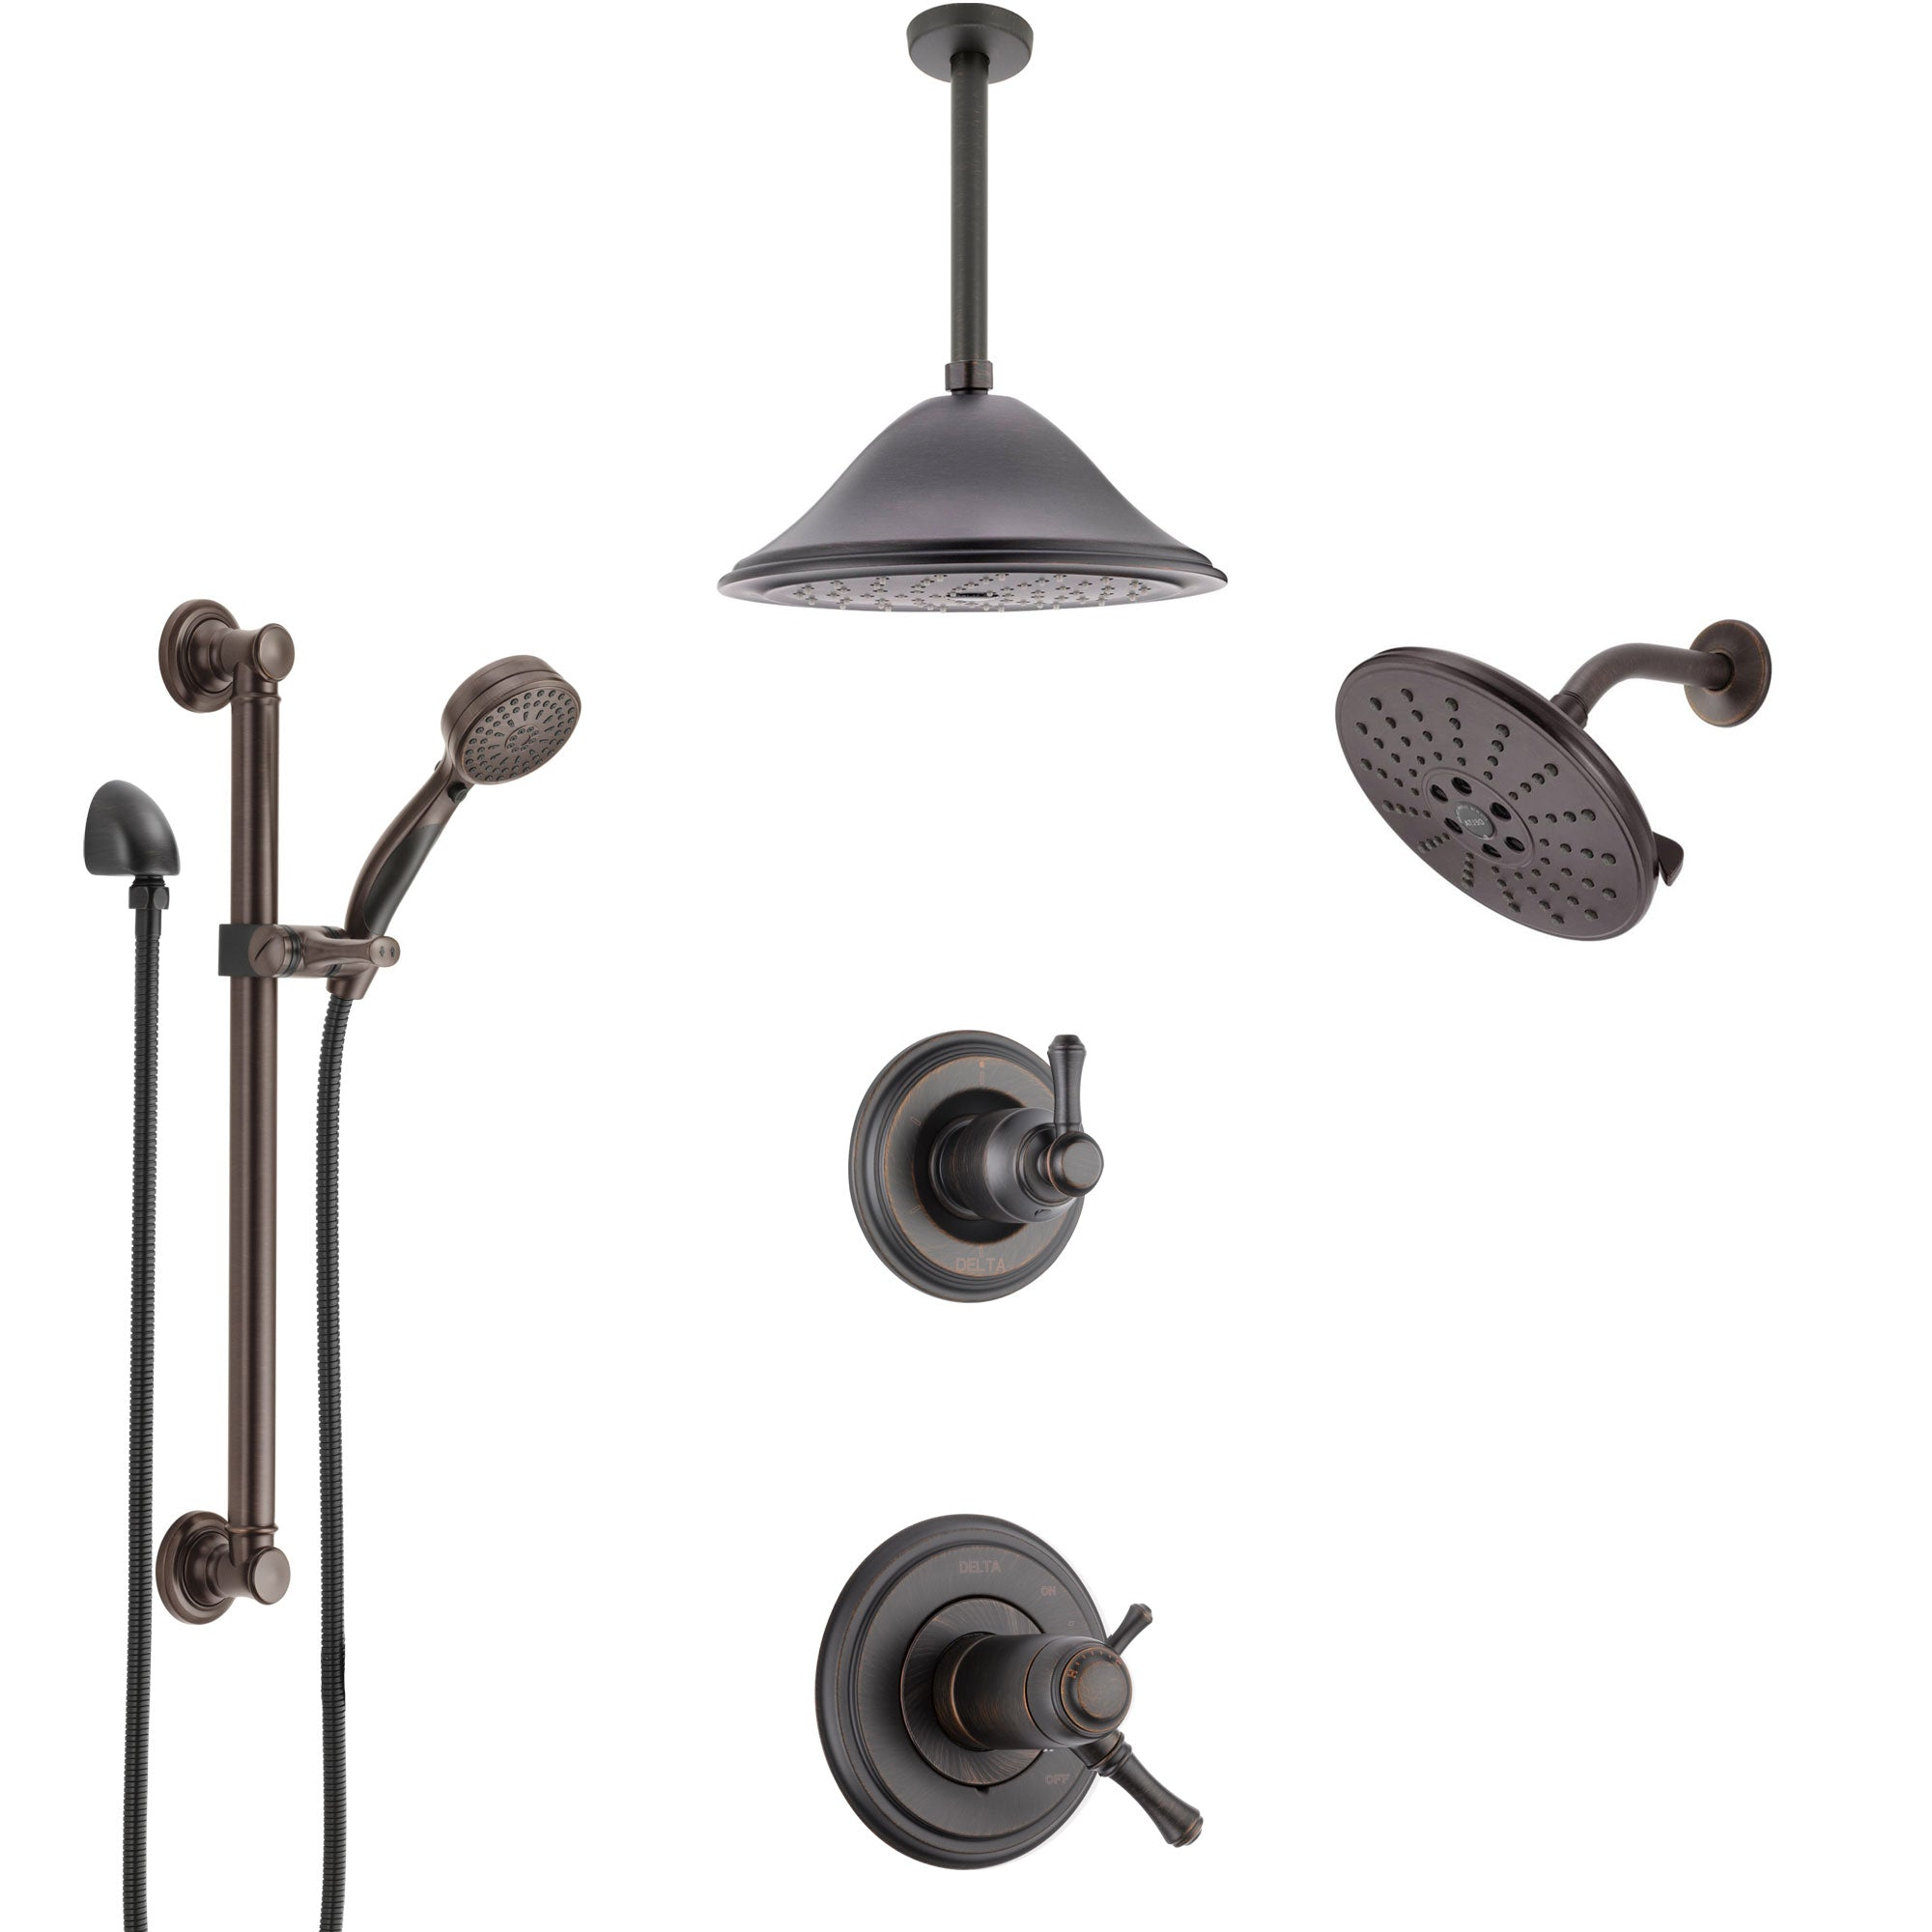 Delta Cassidy Venetian Bronze Dual Thermostatic Control Shower System, Diverter, Showerhead, Ceiling Showerhead, and Grab Bar Hand Spray SS17T971RB8